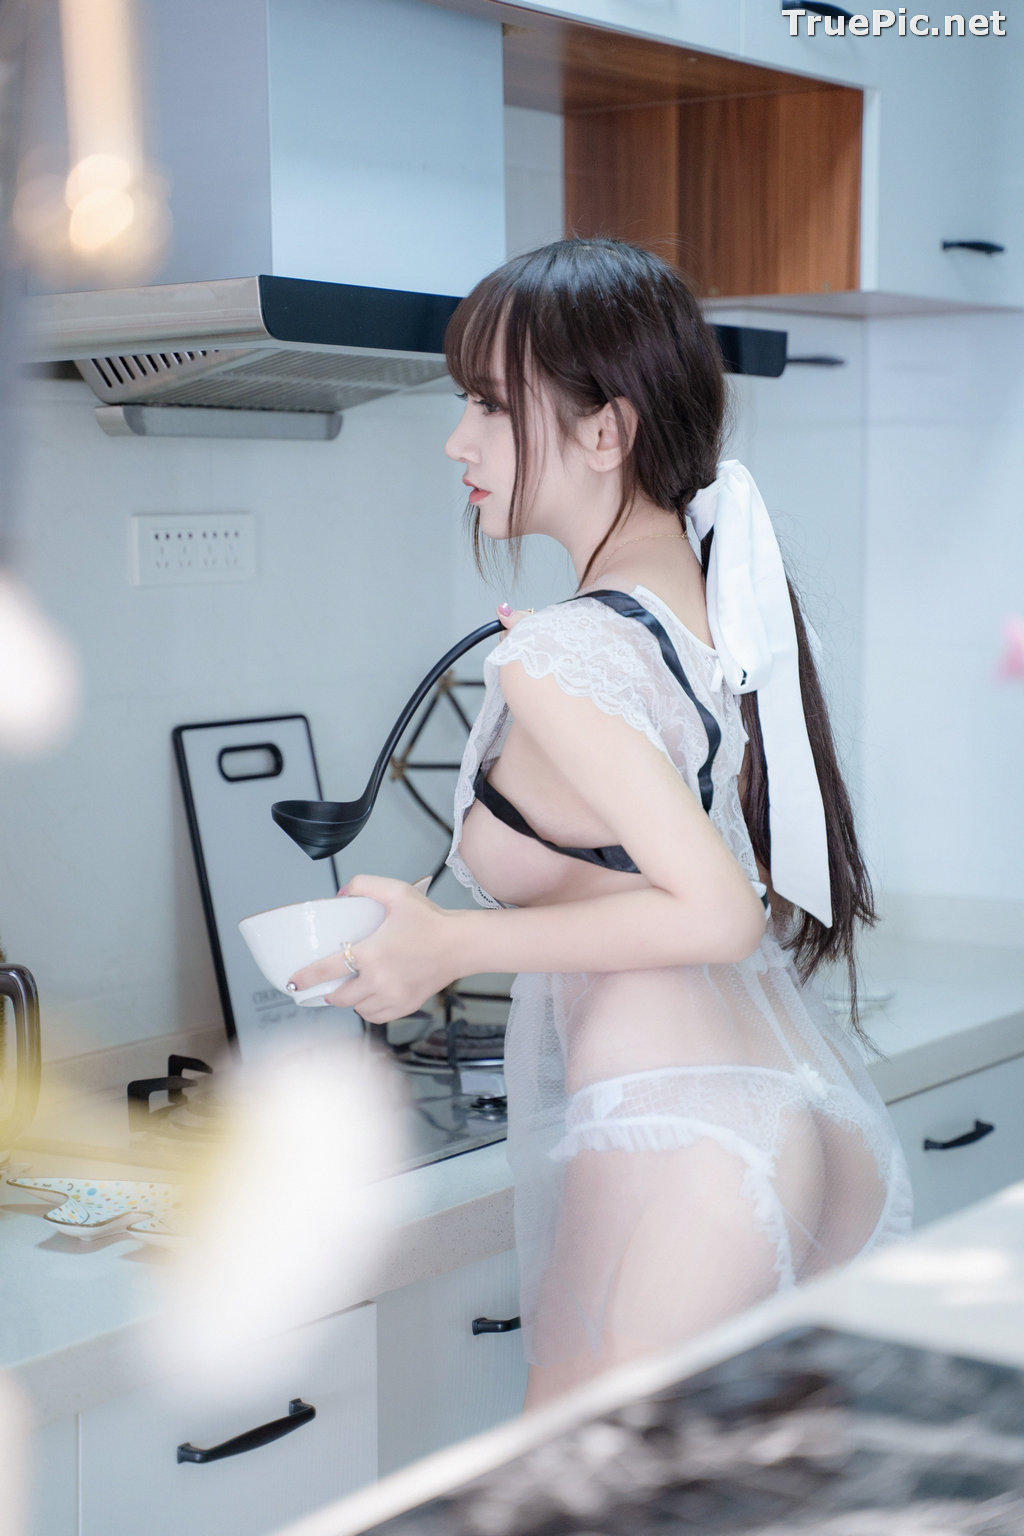 Image Chinese Model – 过期米线线喵 (米線線sama) – Sexy Housewife - TruePic.net - Picture-19